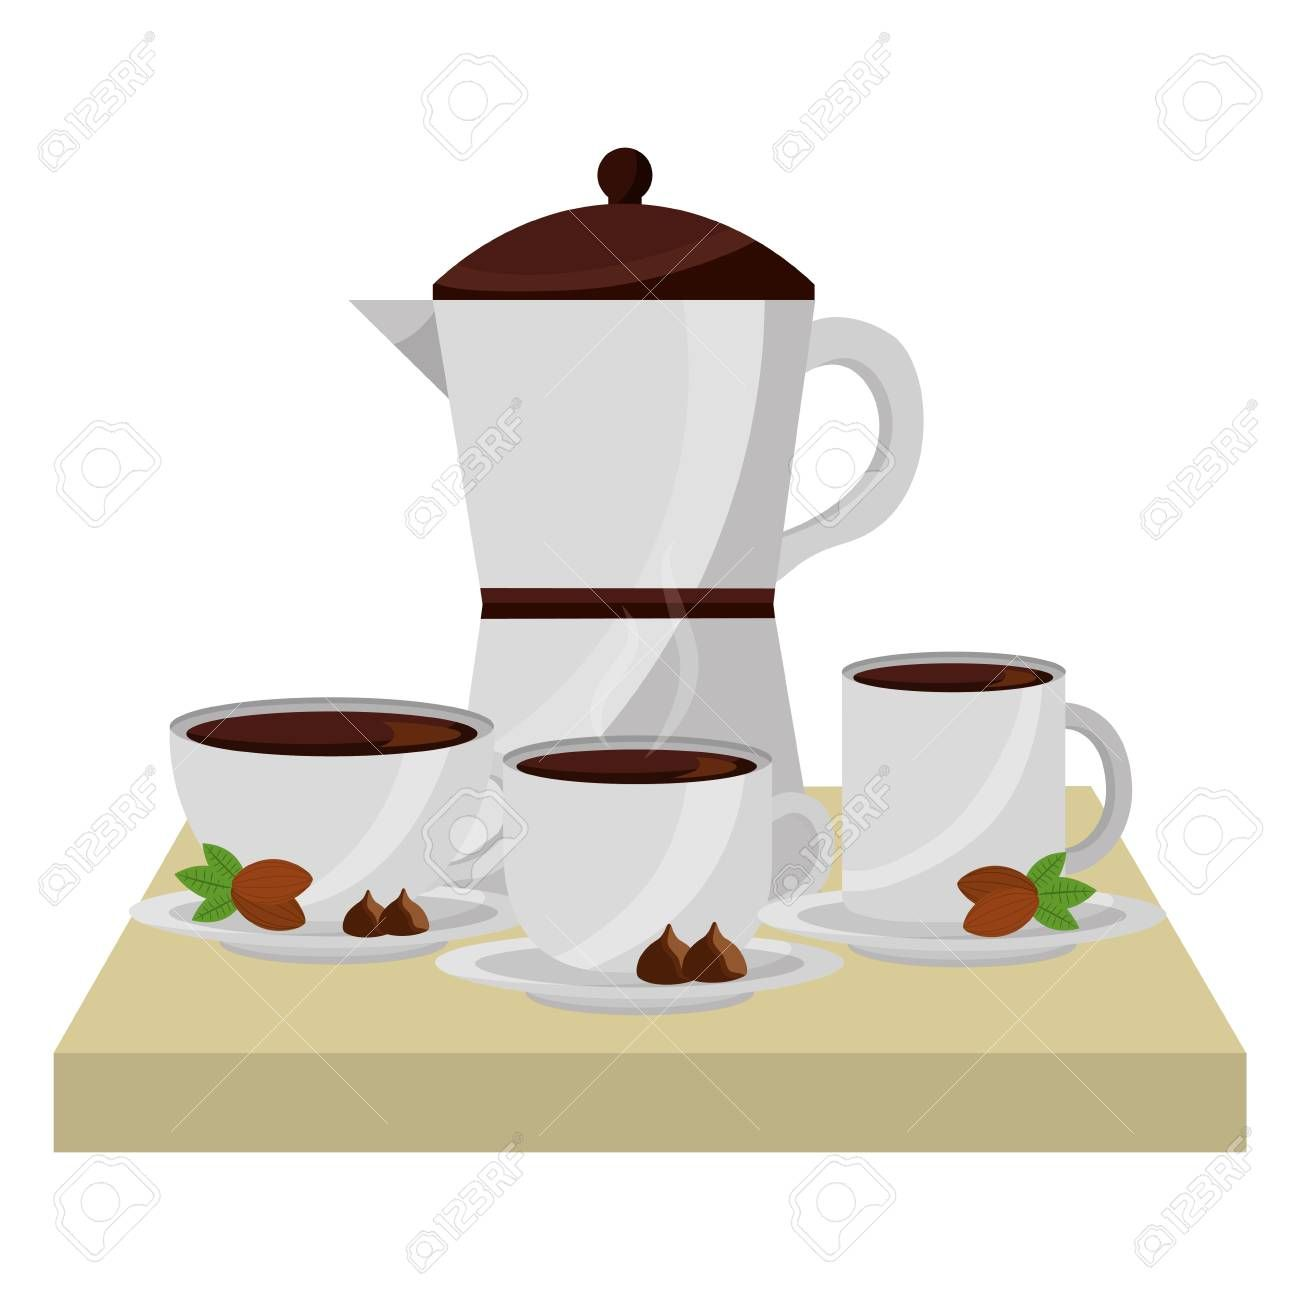 coffee maker and cups on dish beans and chips vector illustration